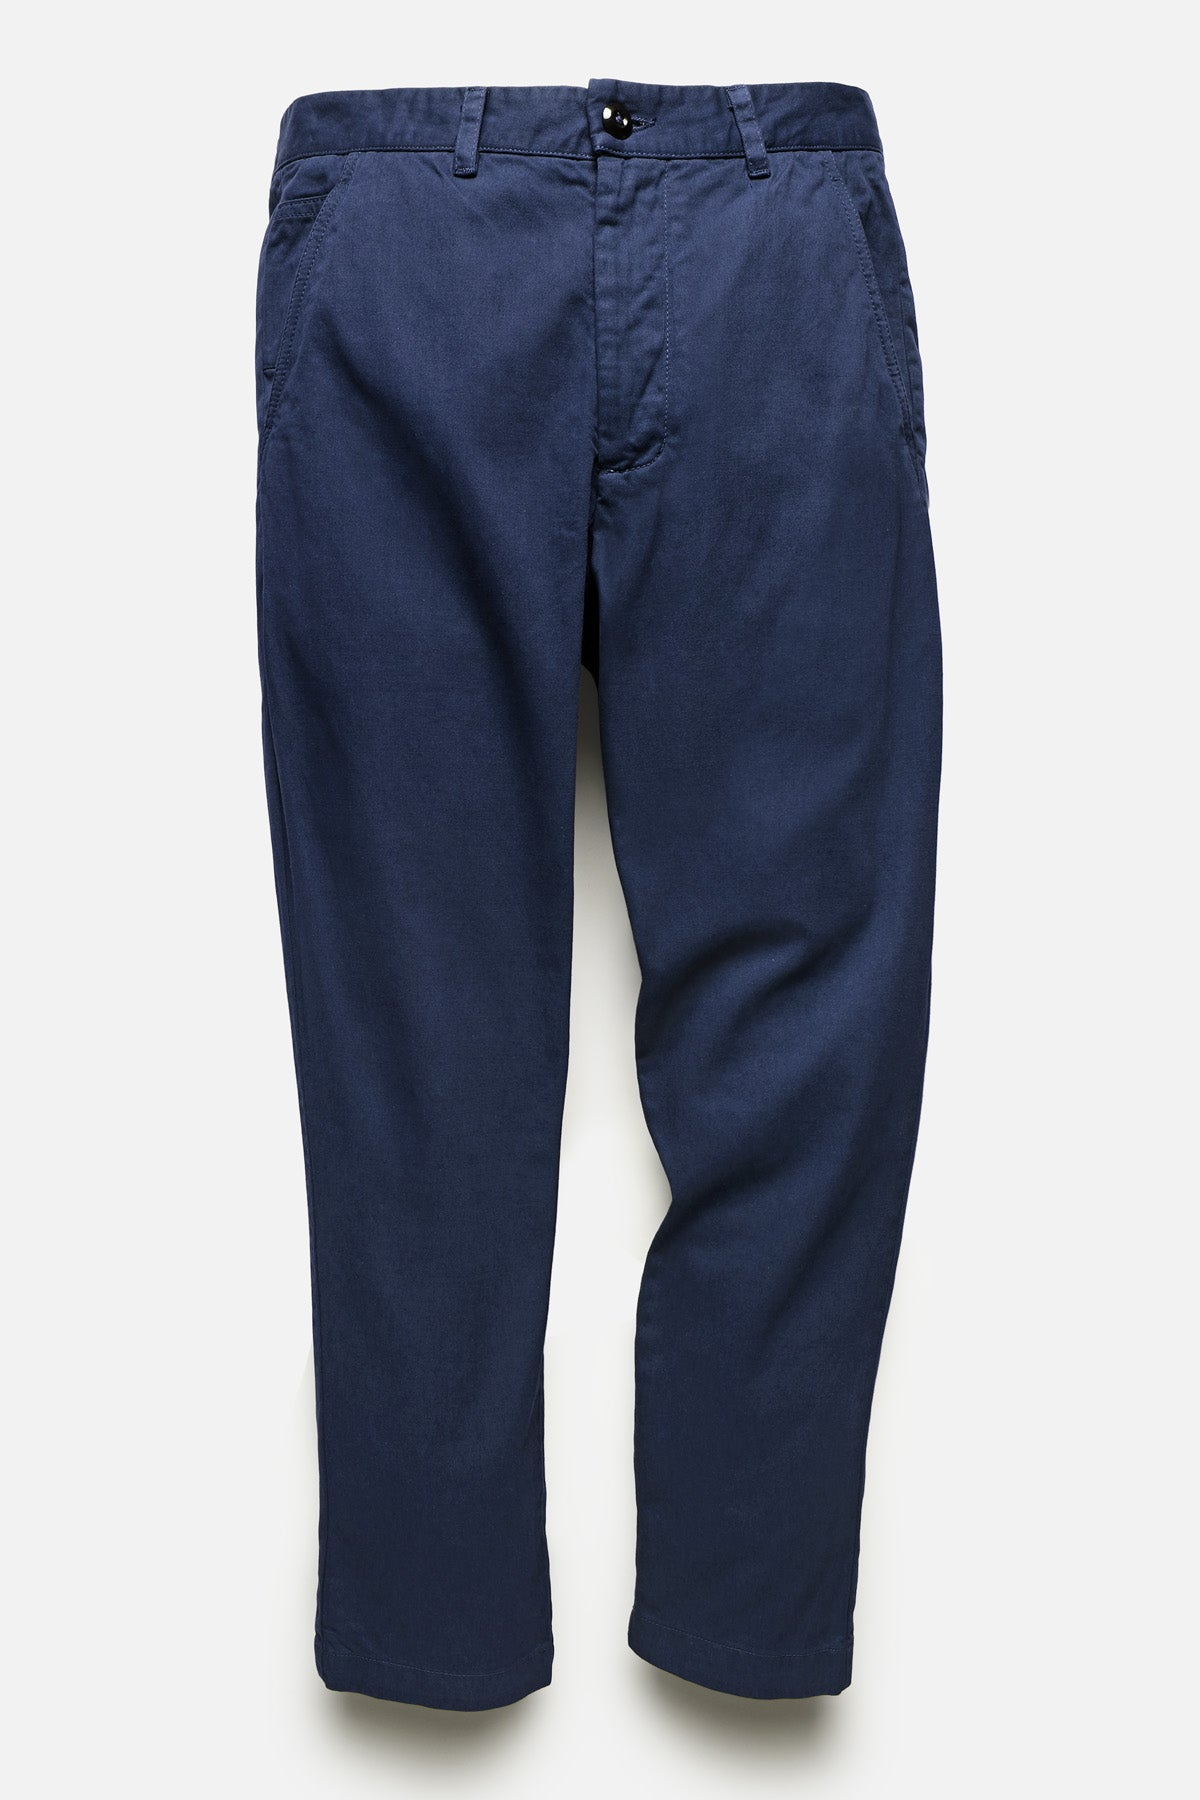 ATLAS TROUSER IN BLUE - Fortune Goods